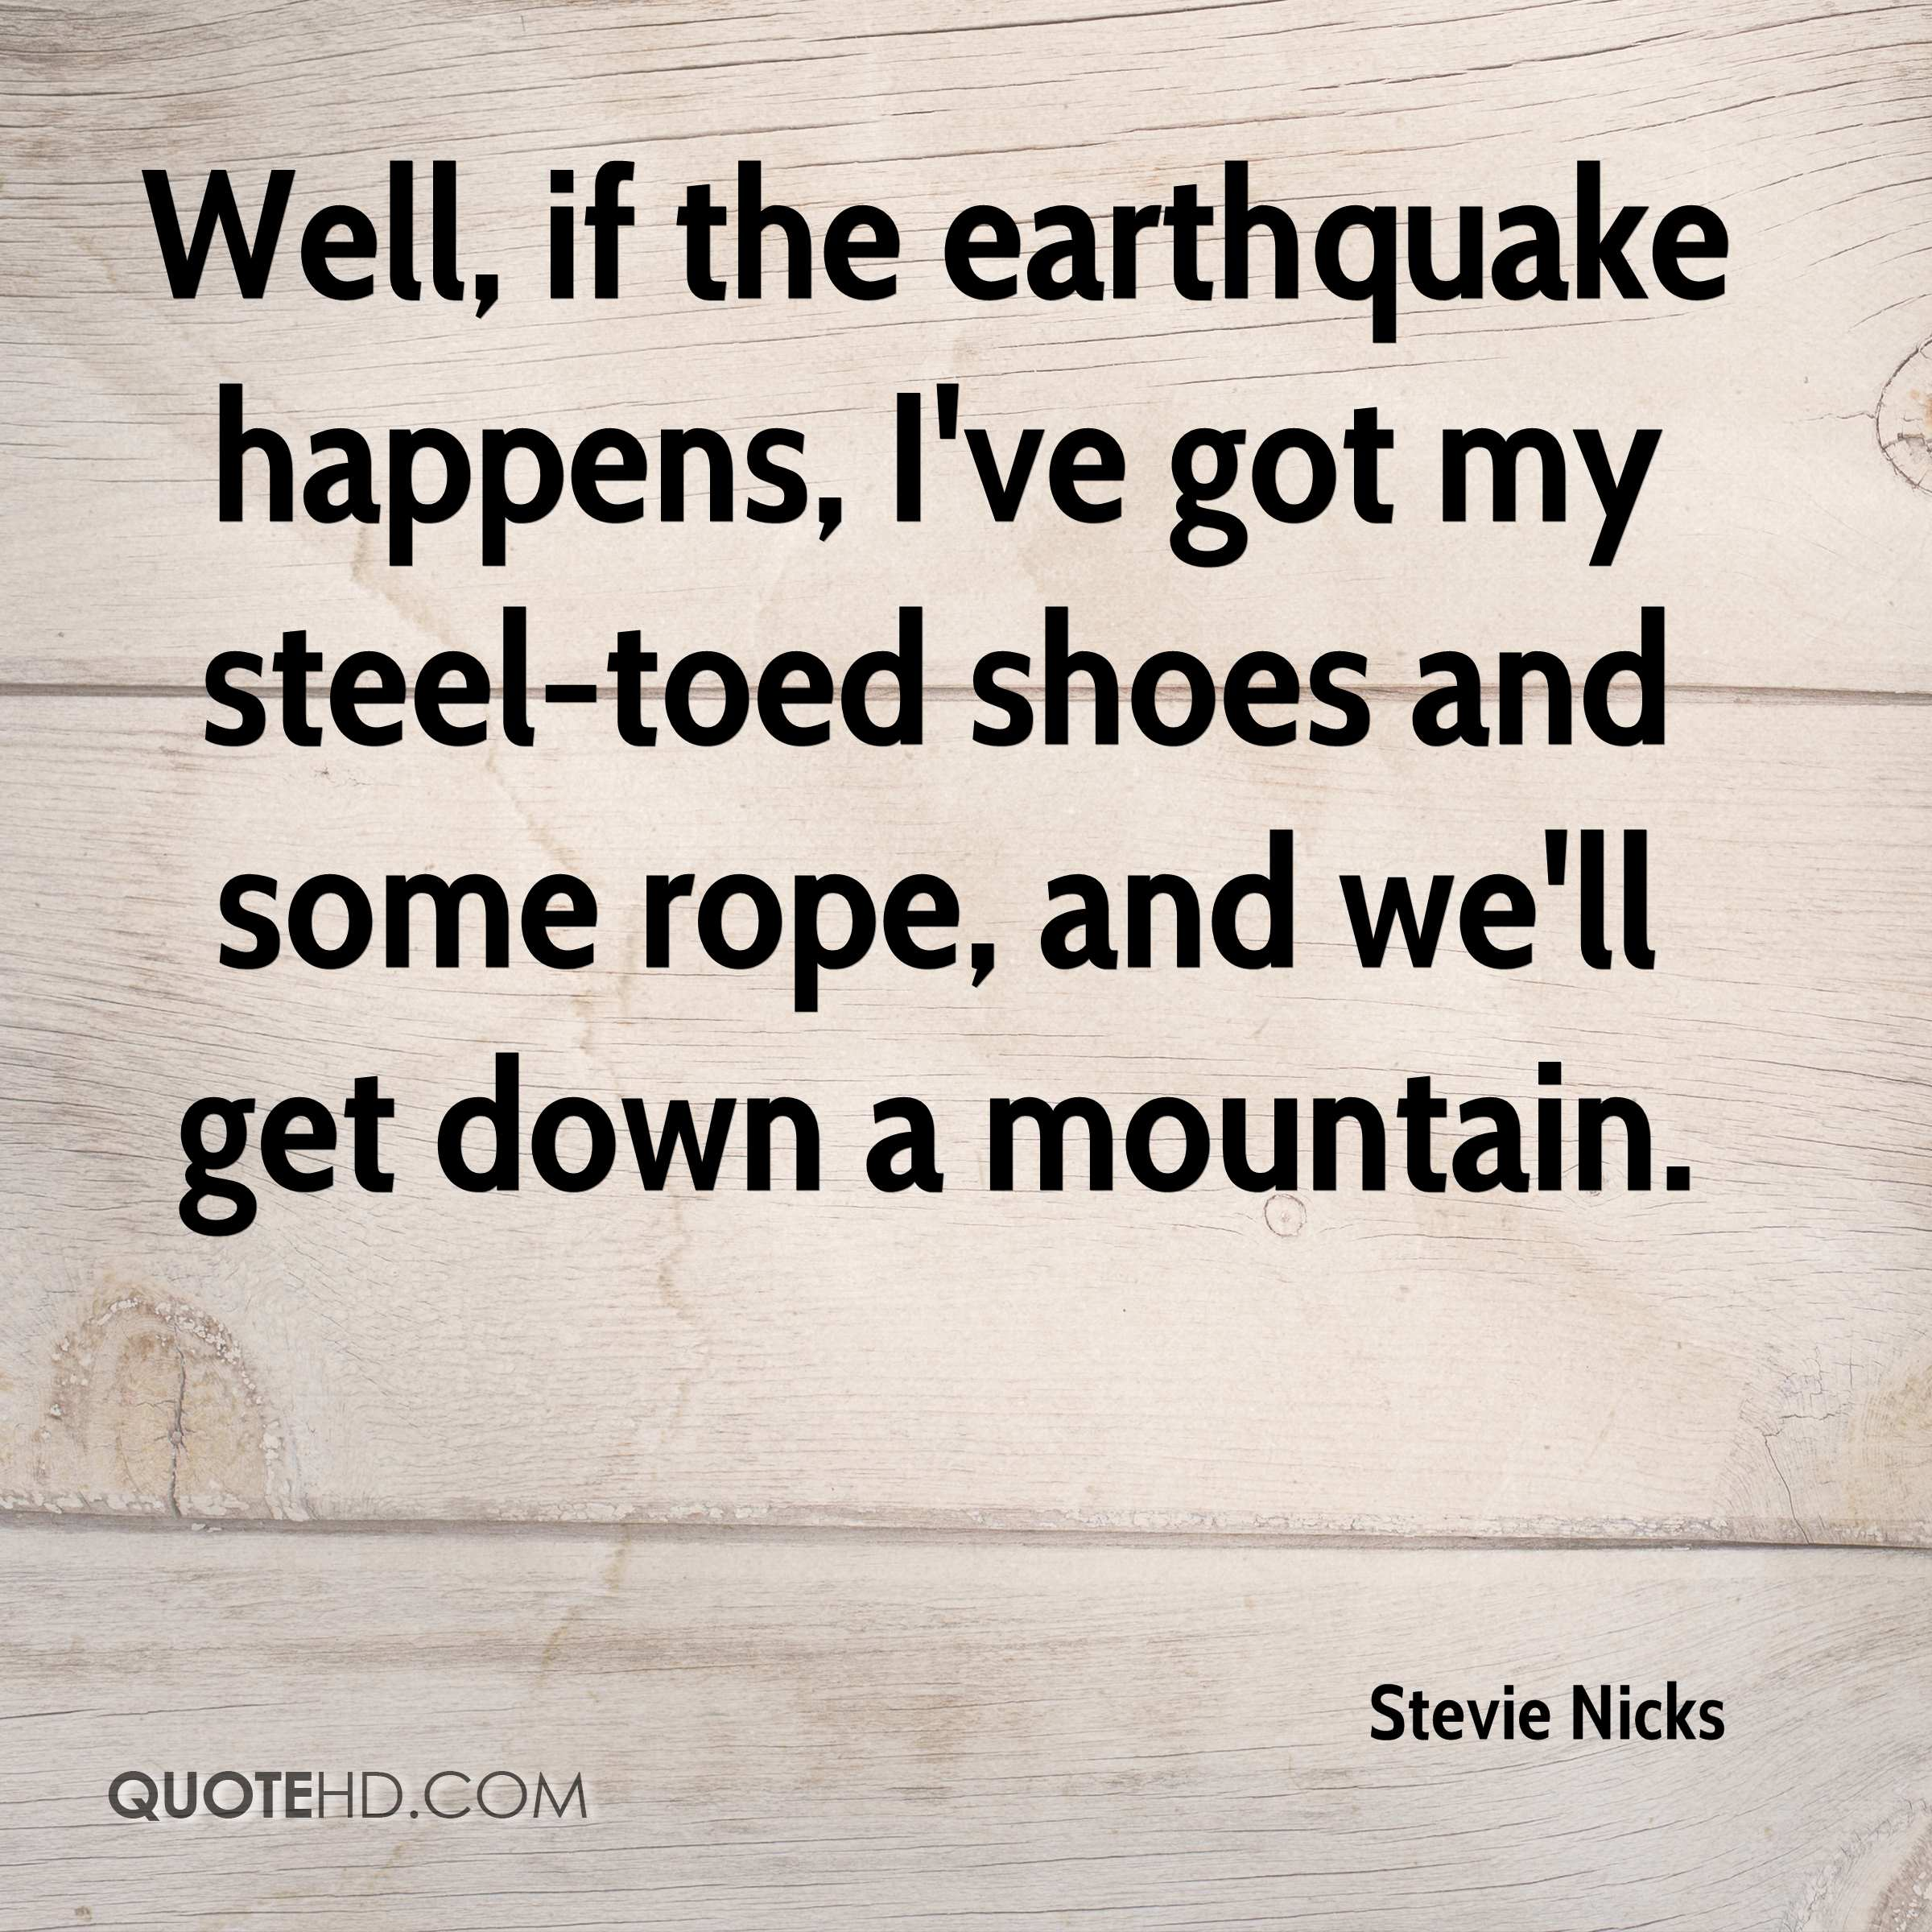 Well, if the earthquake happens, I've got my steel-toed shoes and some rope, and we'll get down a mountain.